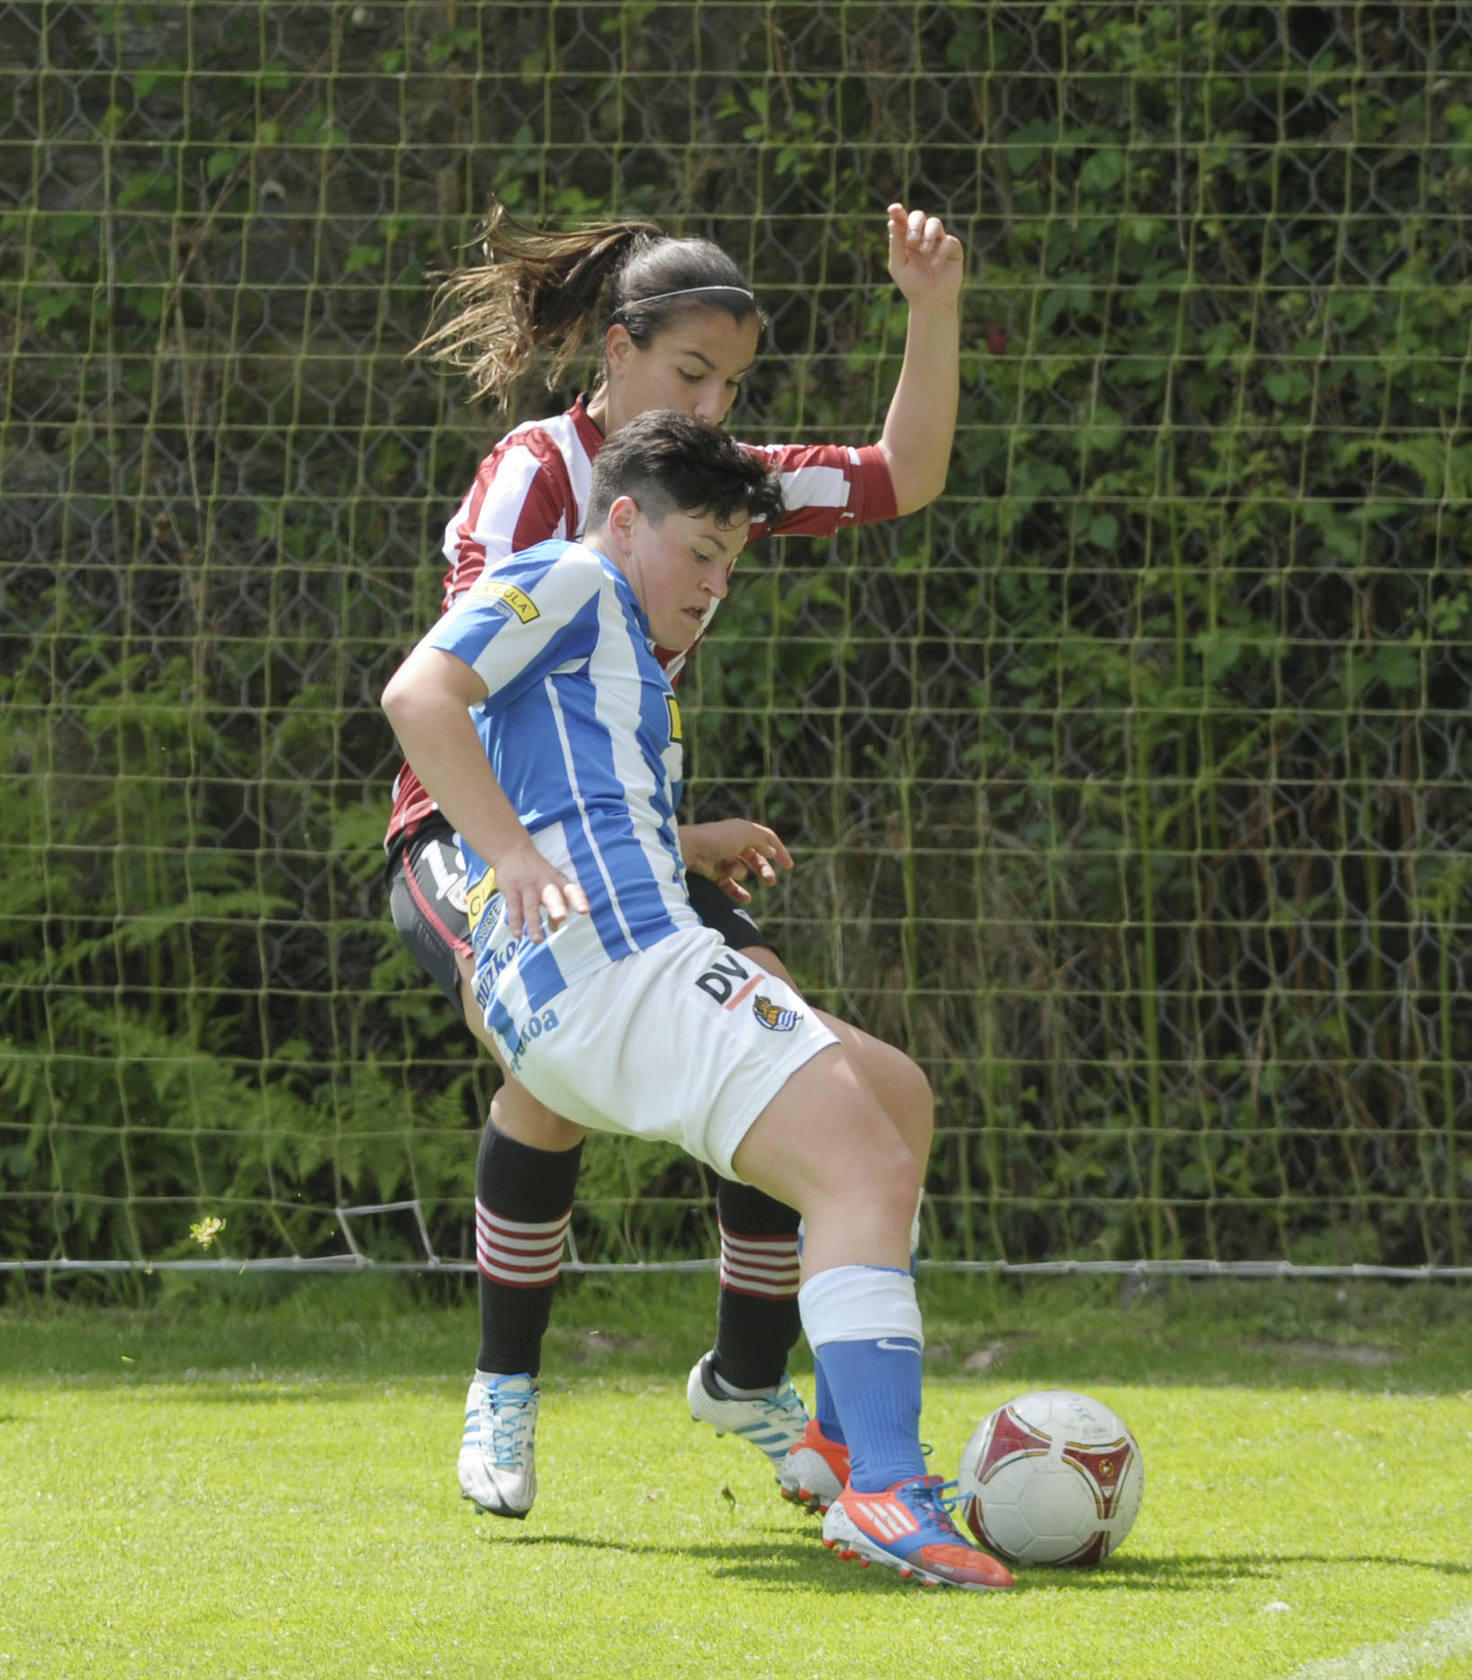 Las Real femenina pierde contra el Athletic